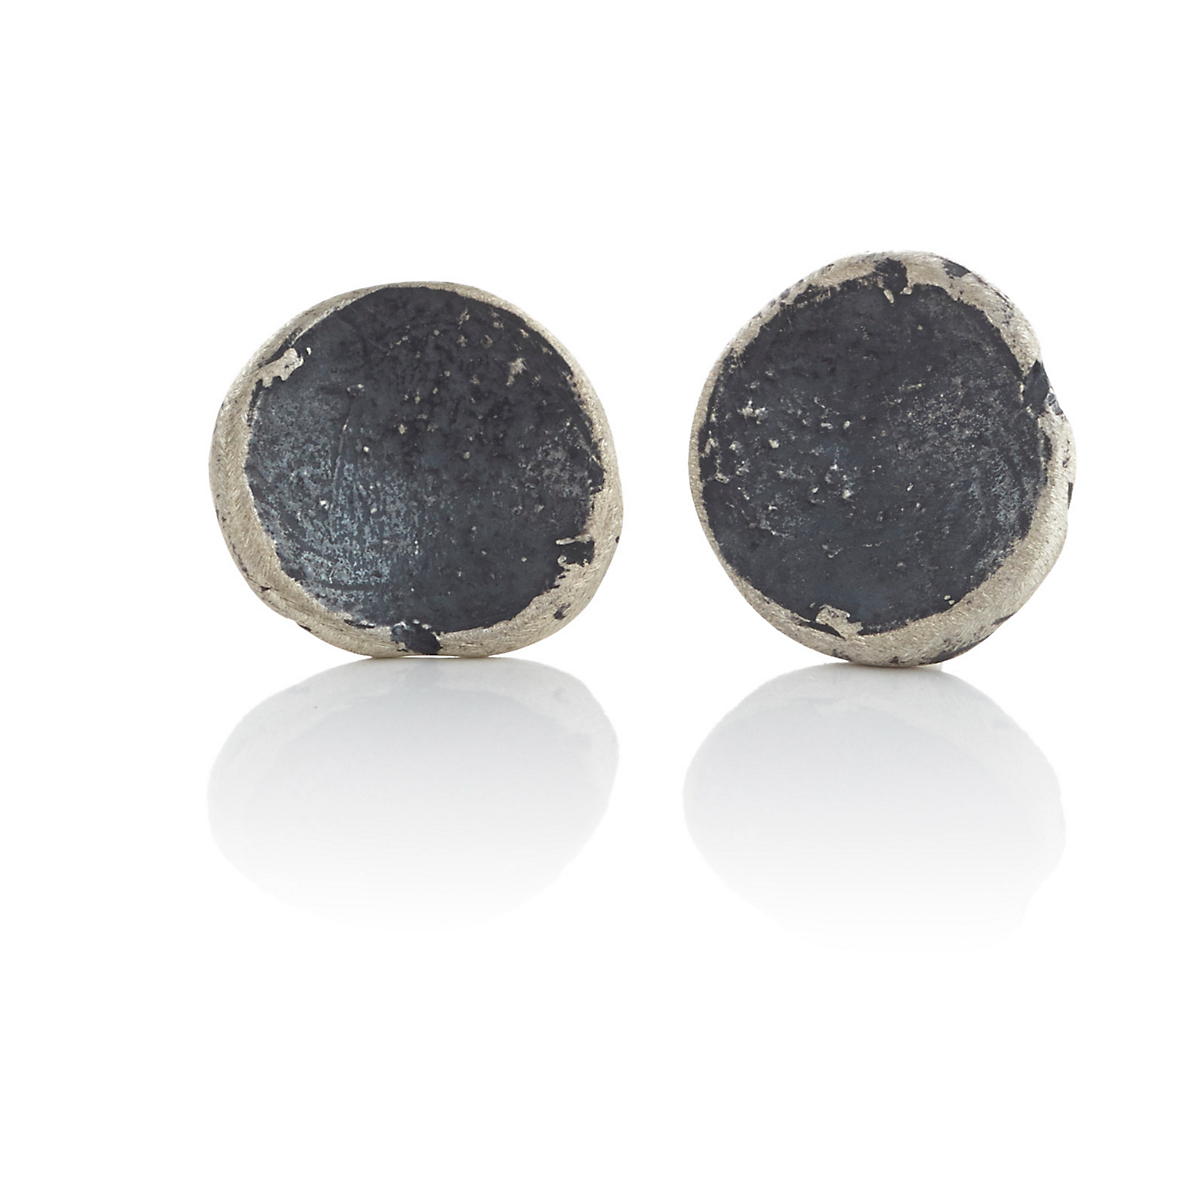 John Iversen Oxidized Silver Anemone Earrings